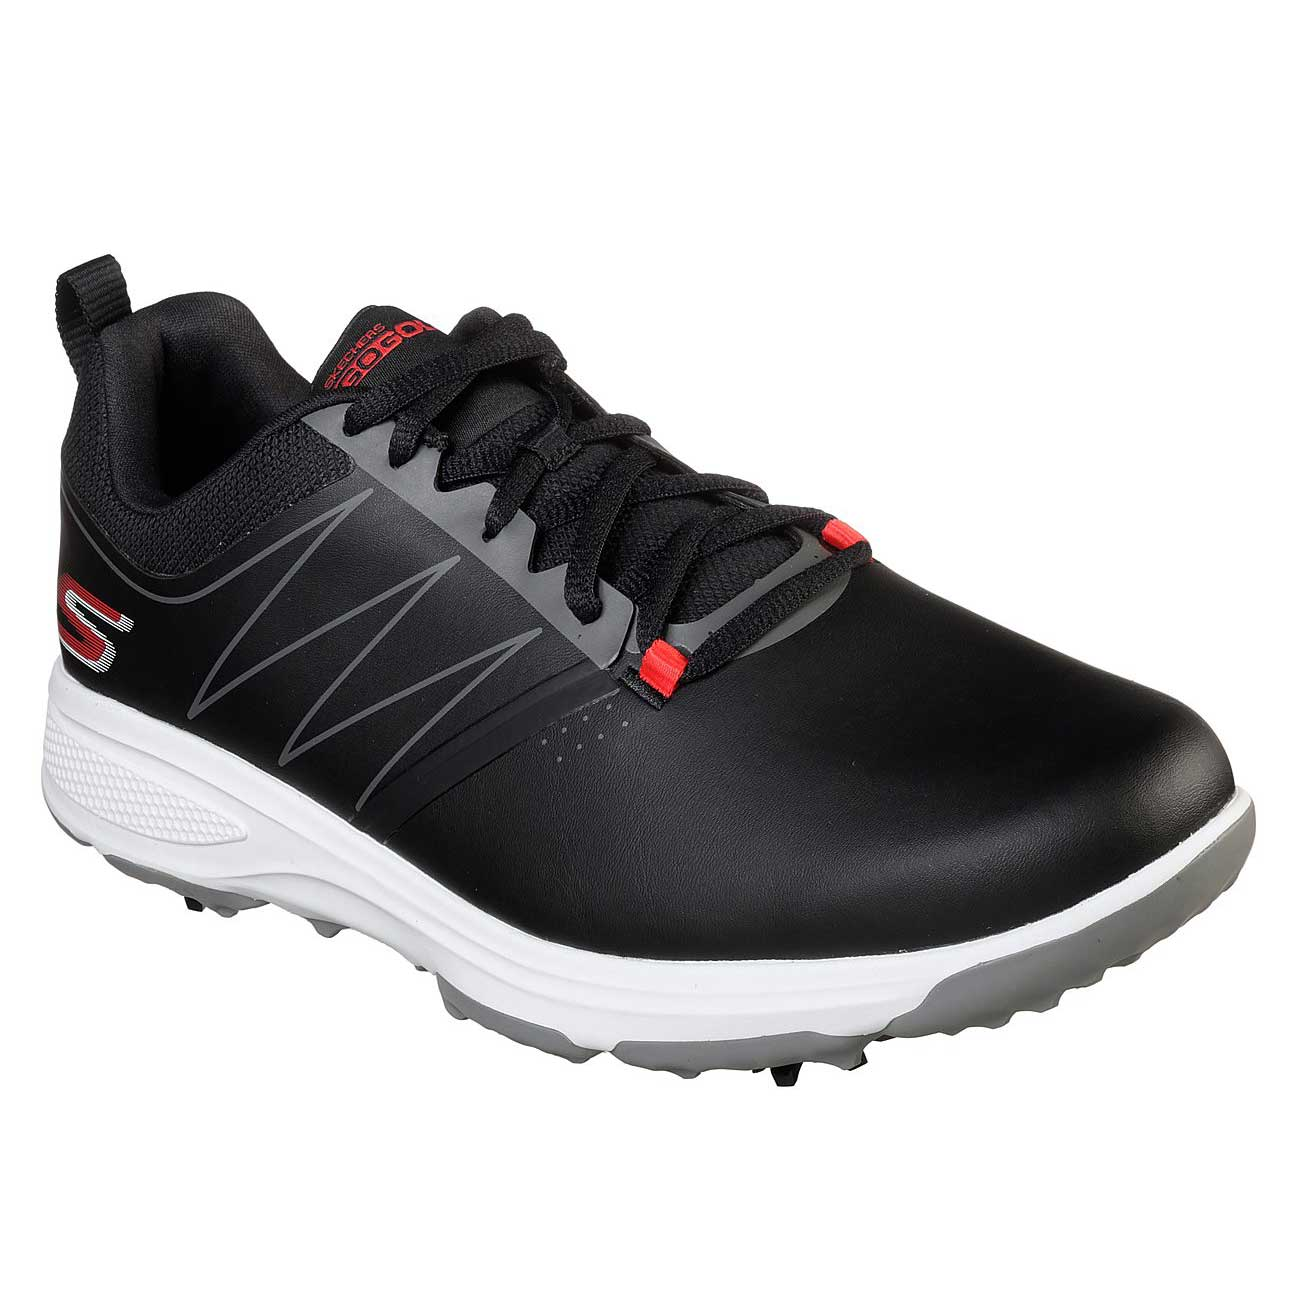 Skechers Men's Go Golf Torque Black/Red Golf Shoe